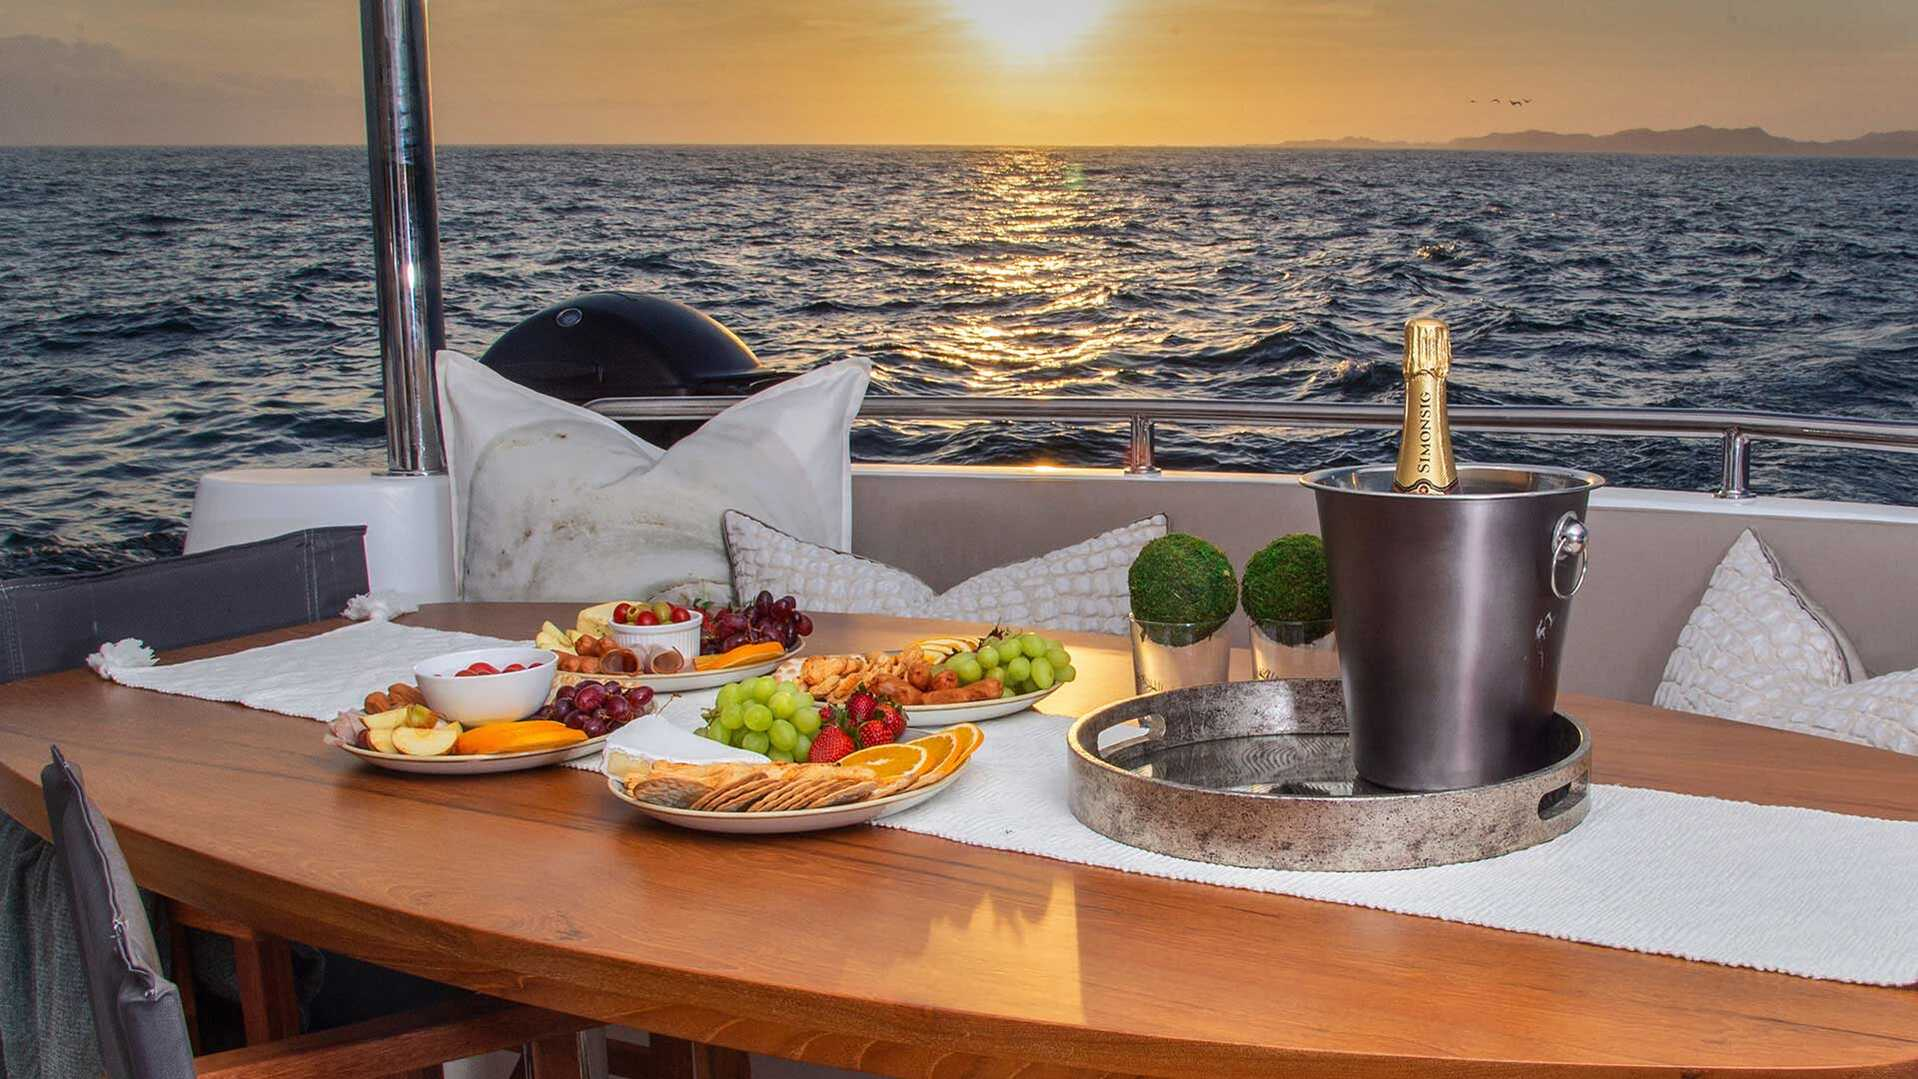 6 TOP Tips For Cooking While Cruising | KYC